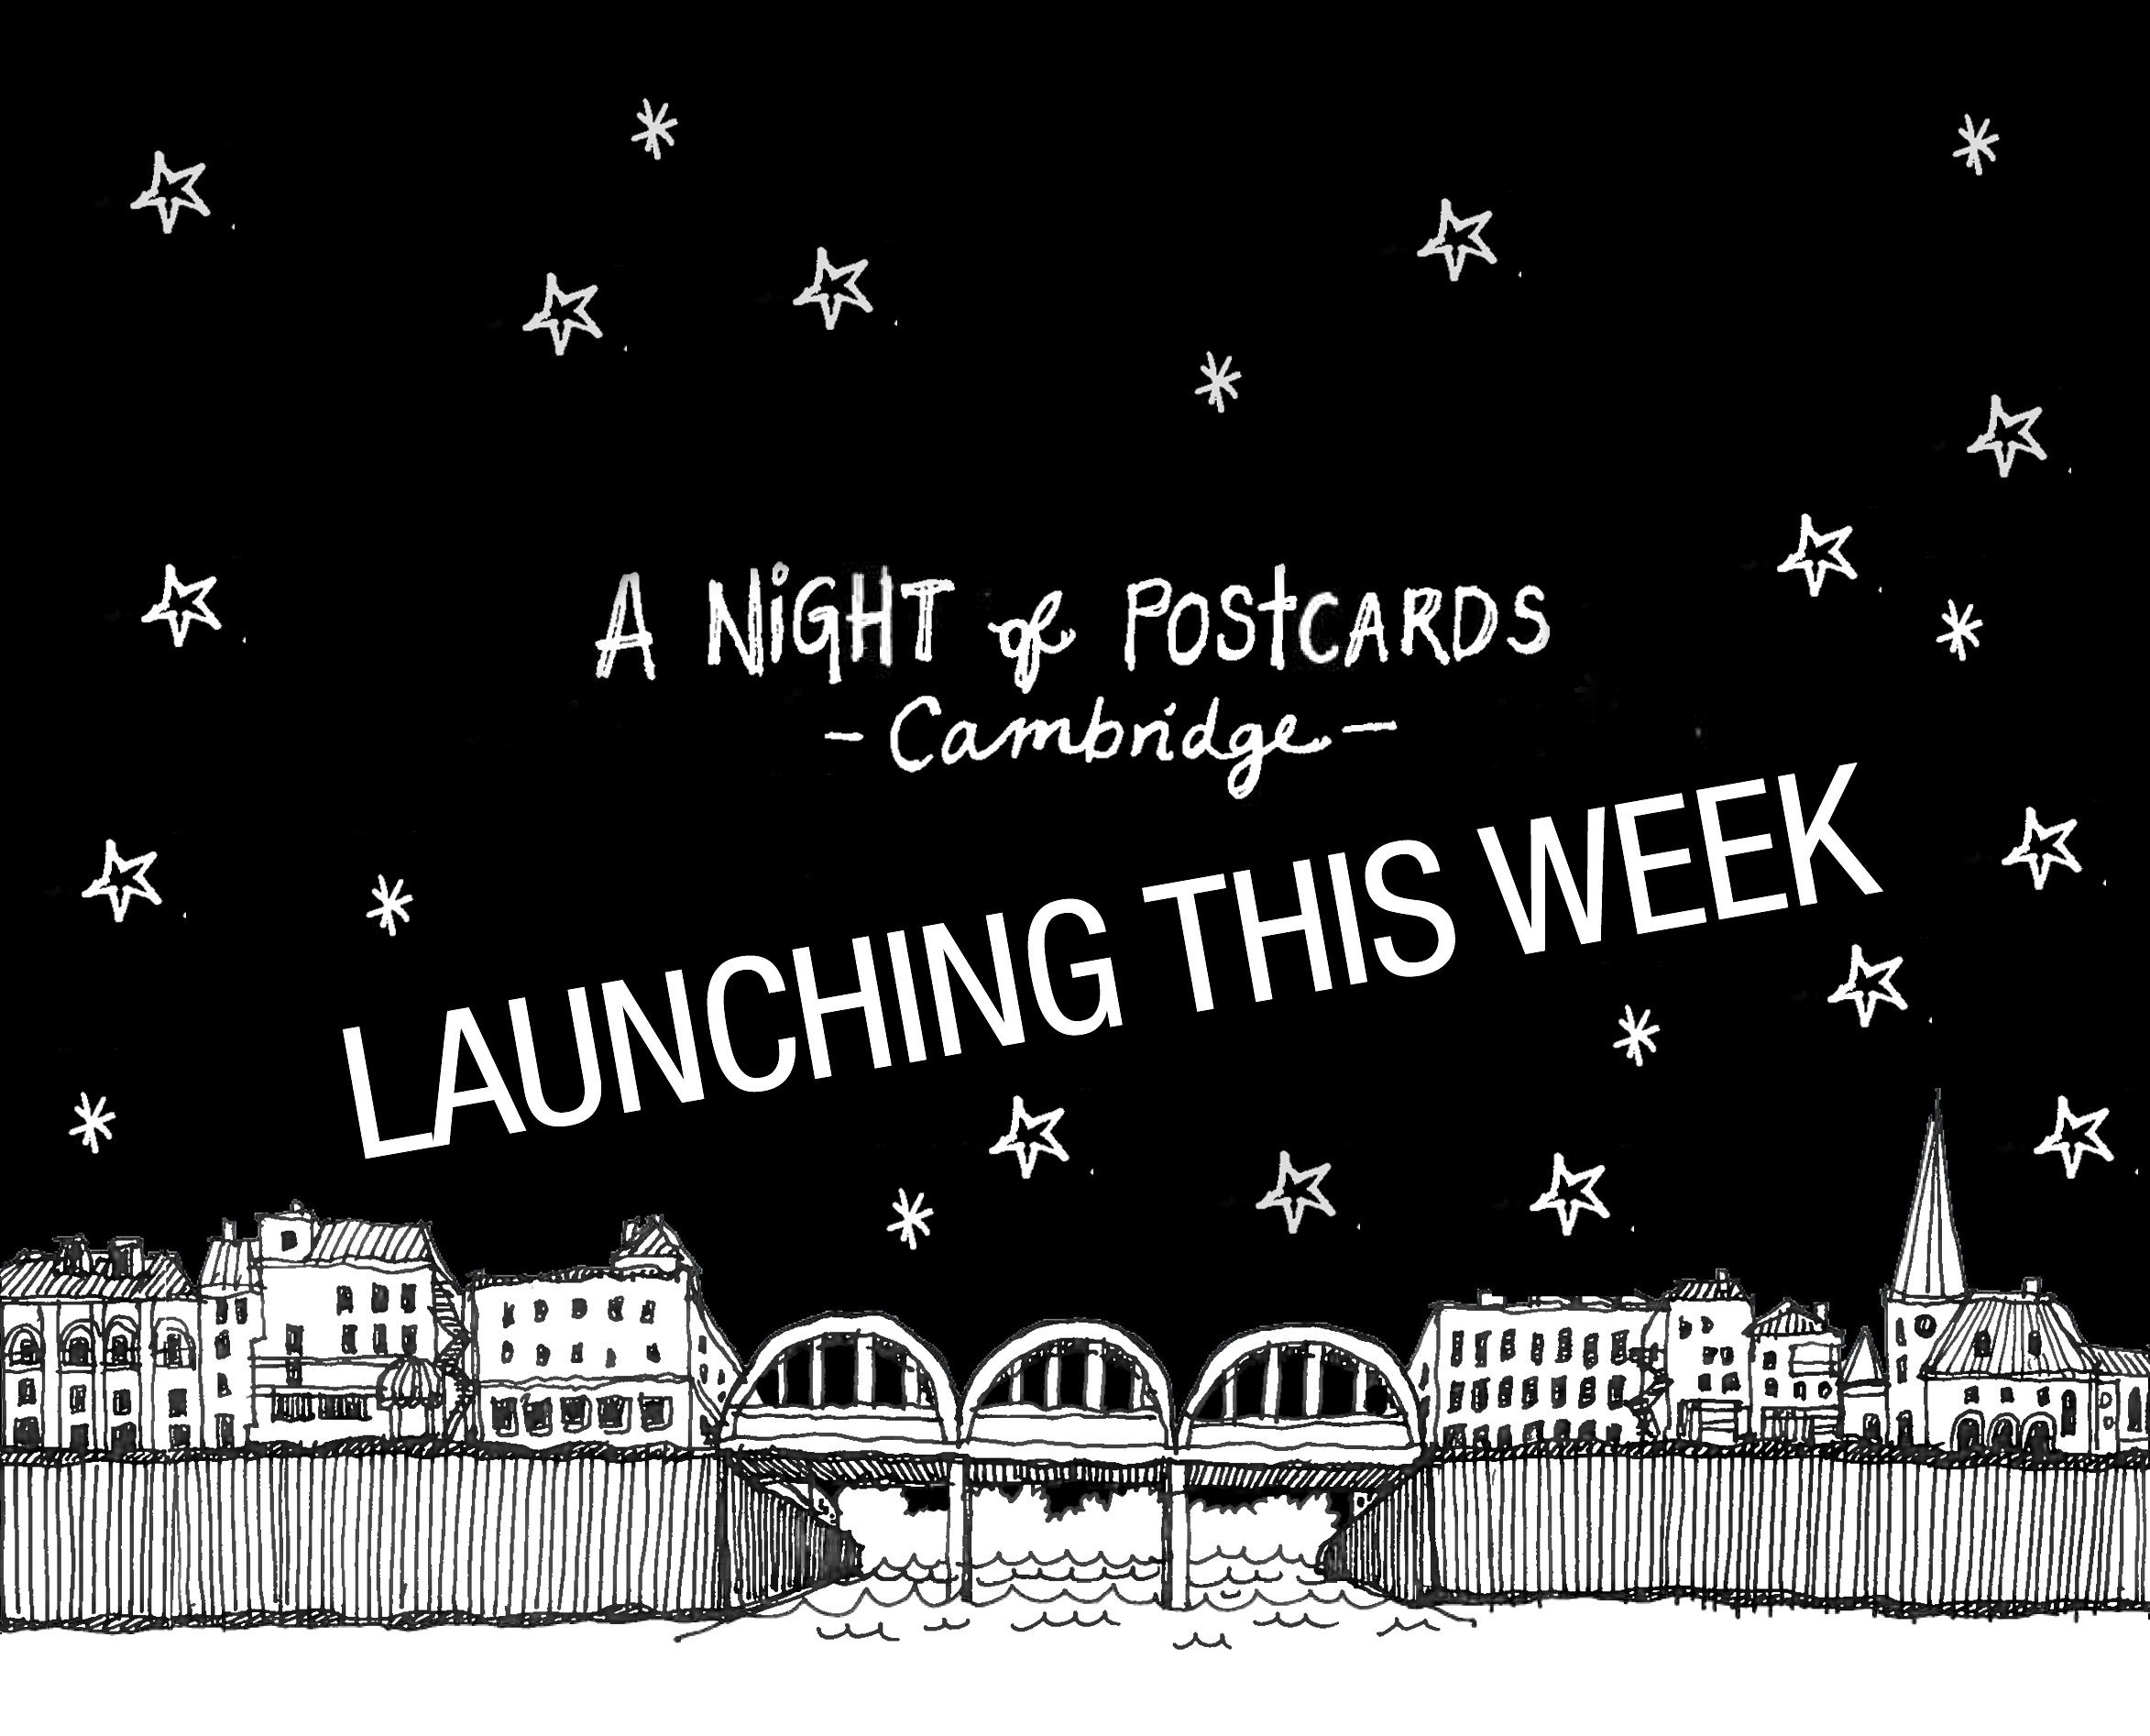 a night of postcards cambridge launch!